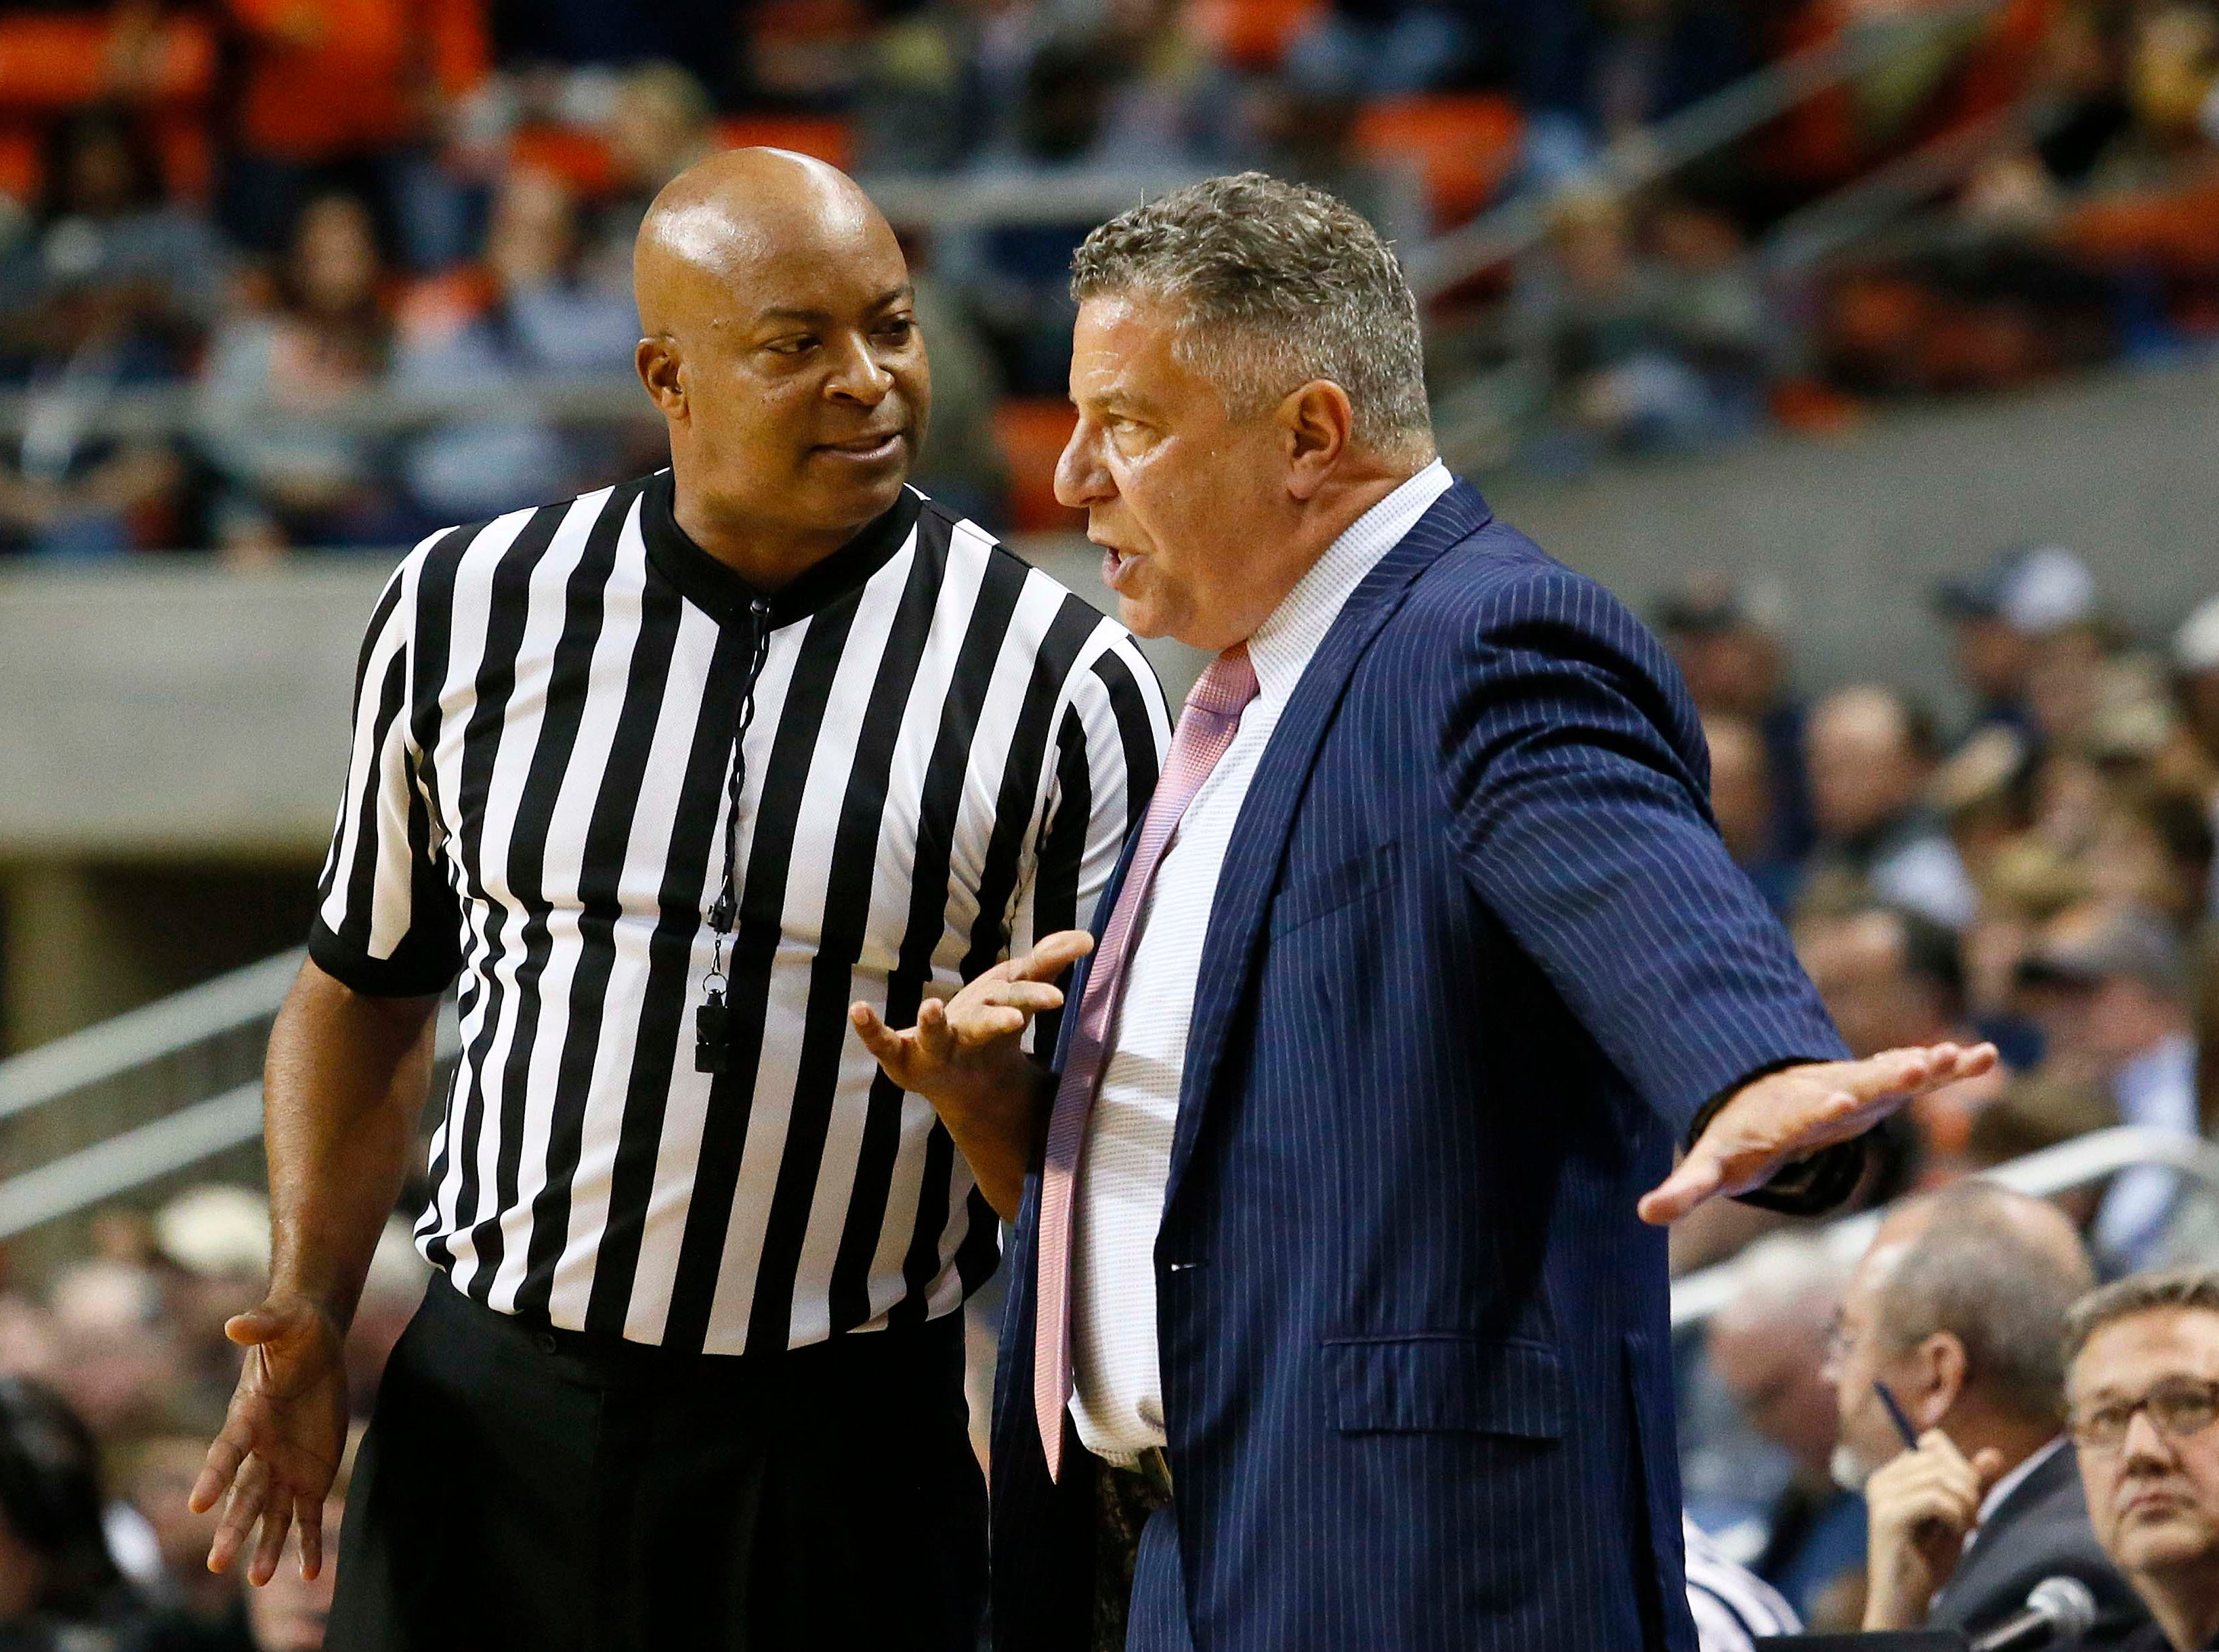 Dec 8, 2018; Auburn, AL, USA; Auburn Tigers head coach Bruce Pearl talks with an official during the first half against the Dayton Flyers at Auburn Arena. Mandatory Credit: John Reed-USA TODAY Sports